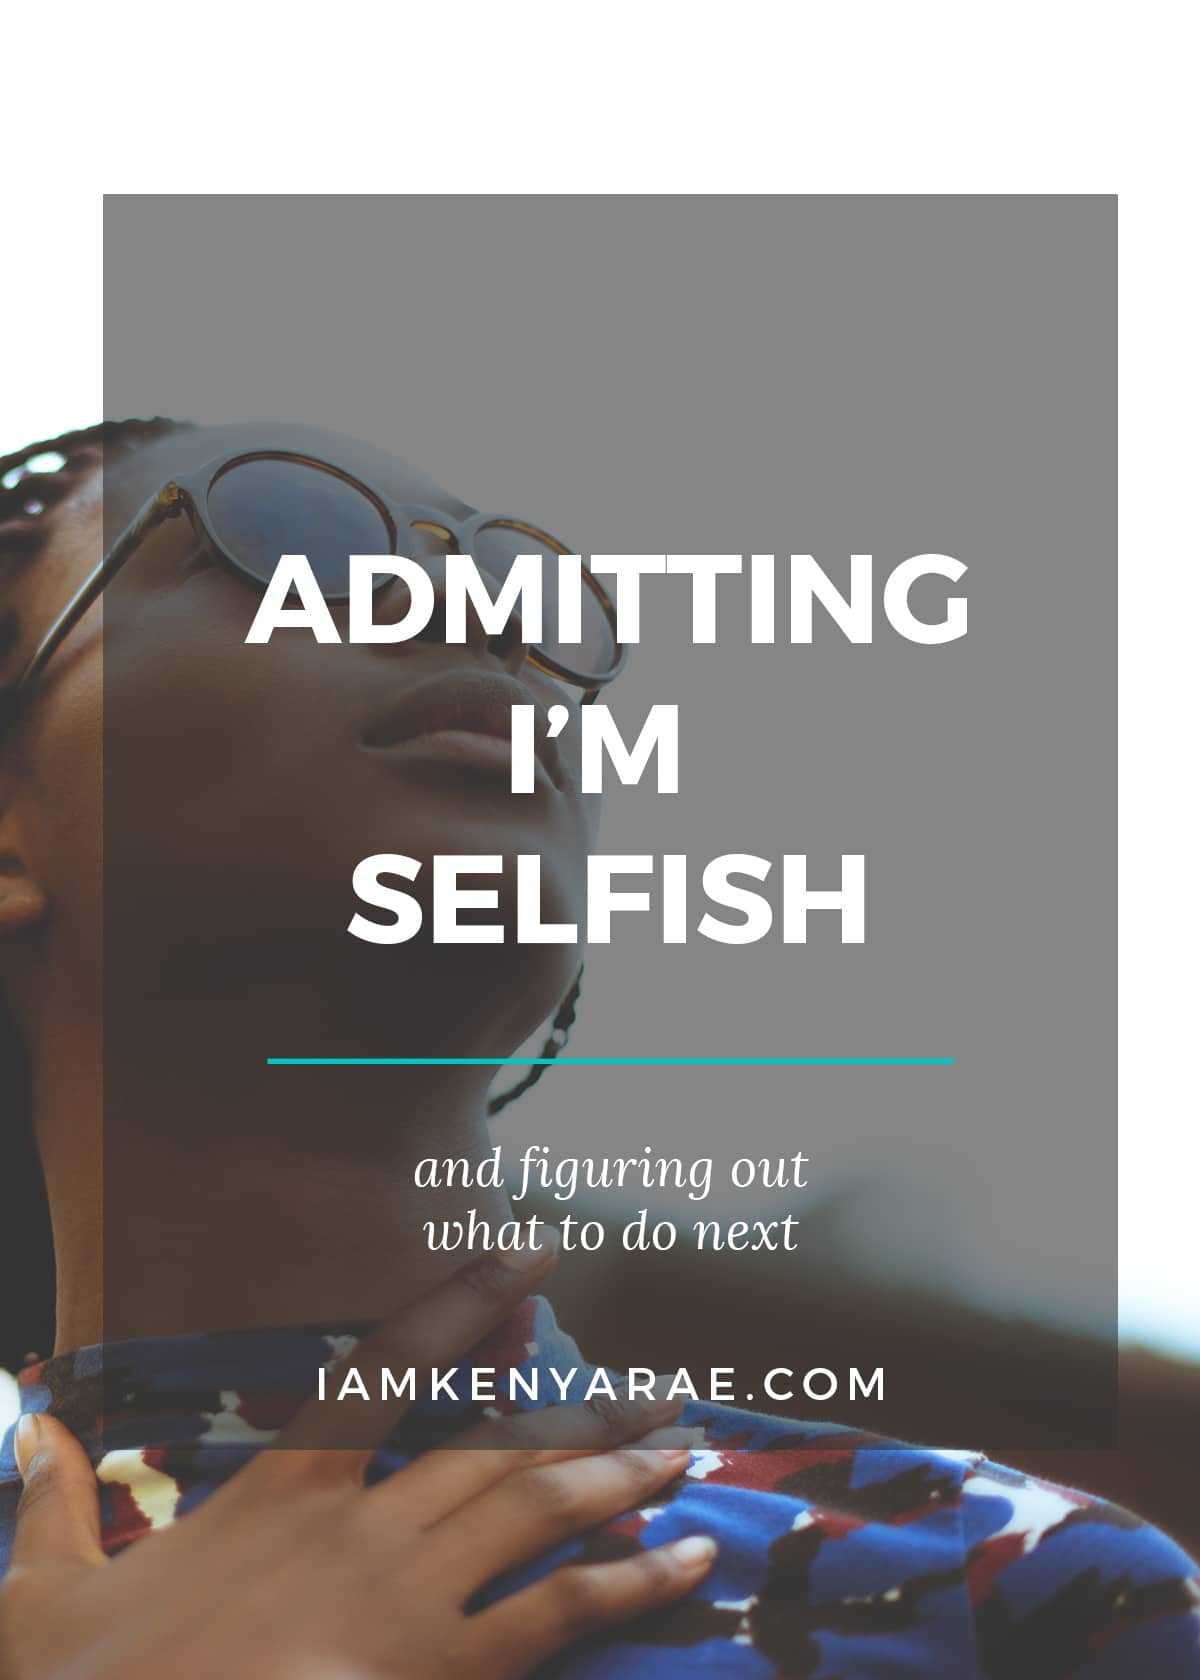 Admitting I'm Selfish